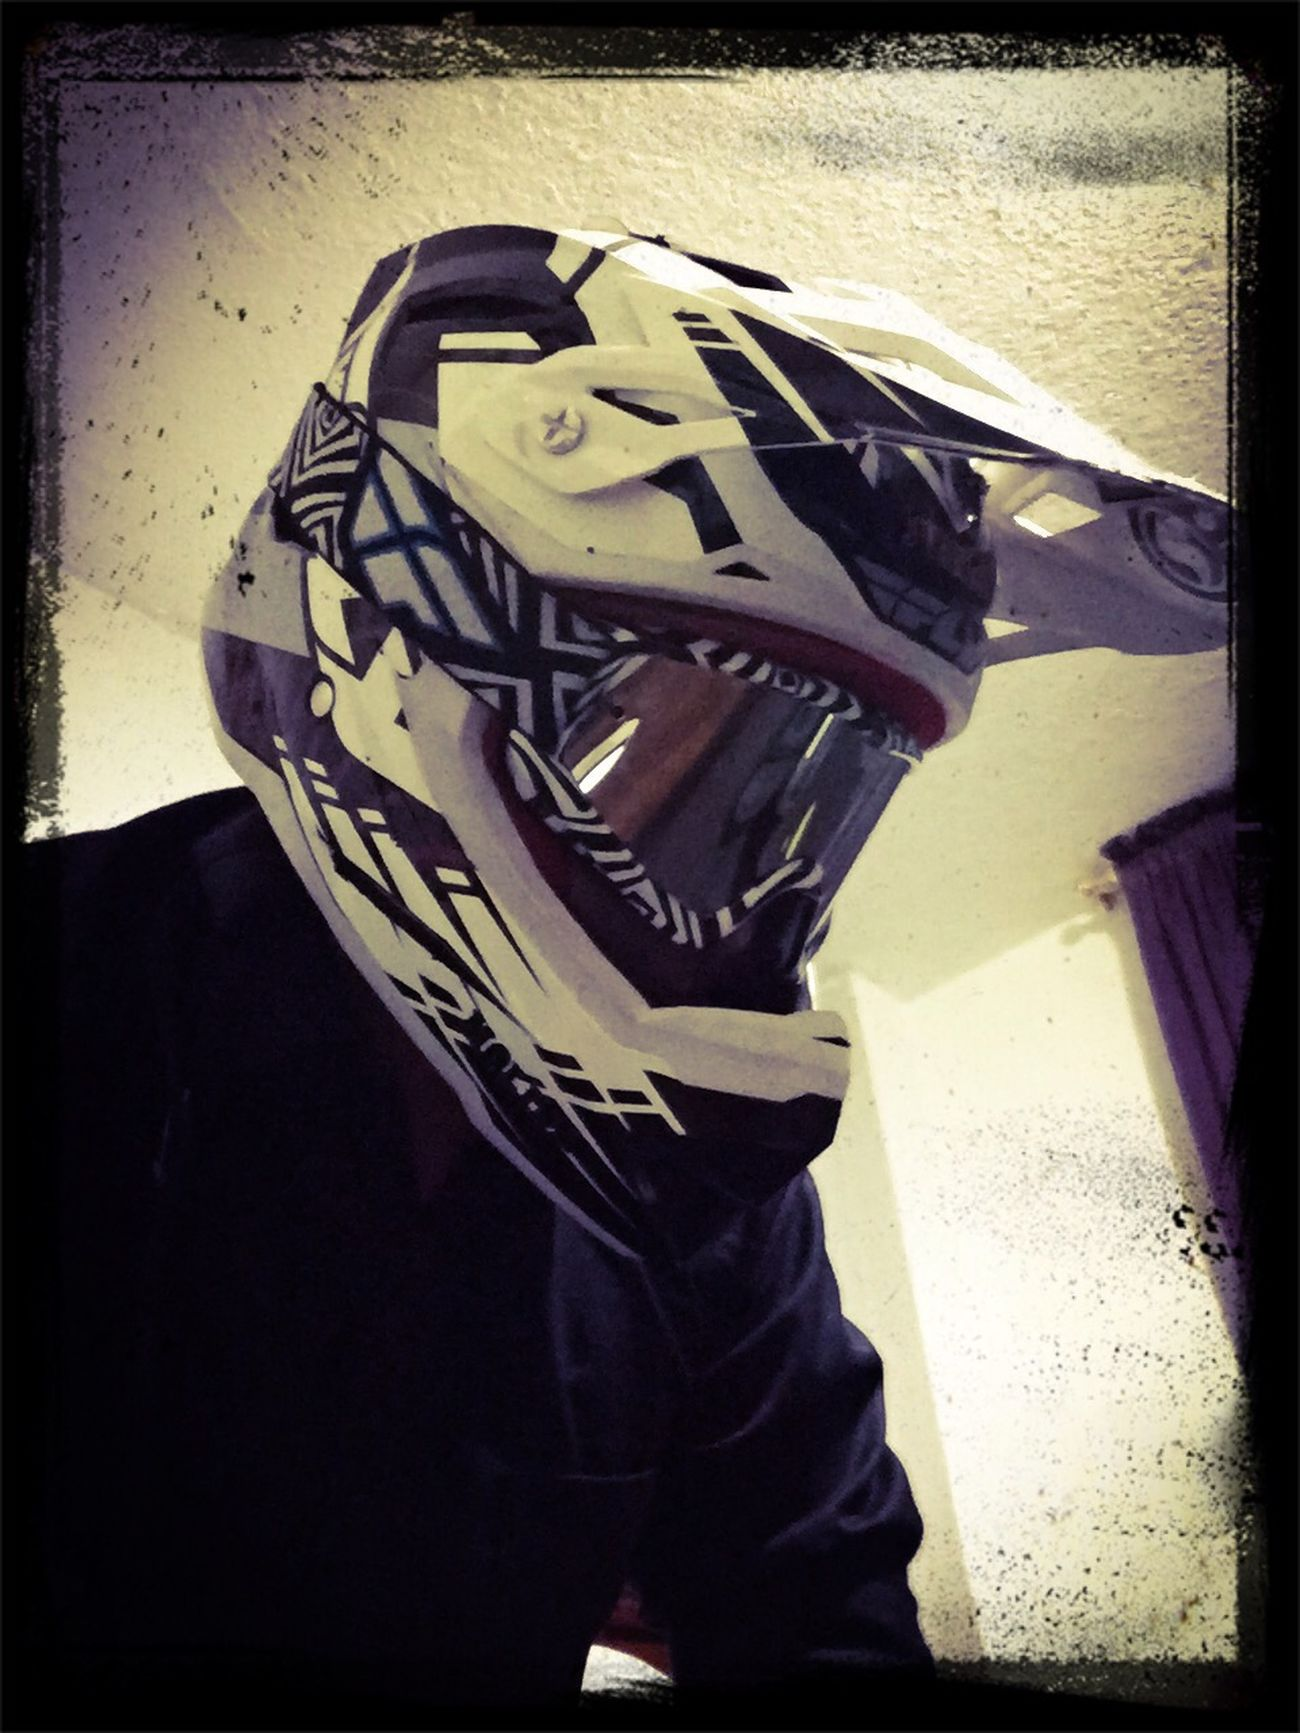 RIde or die!! mMotocrossmMotorcycle Helmet